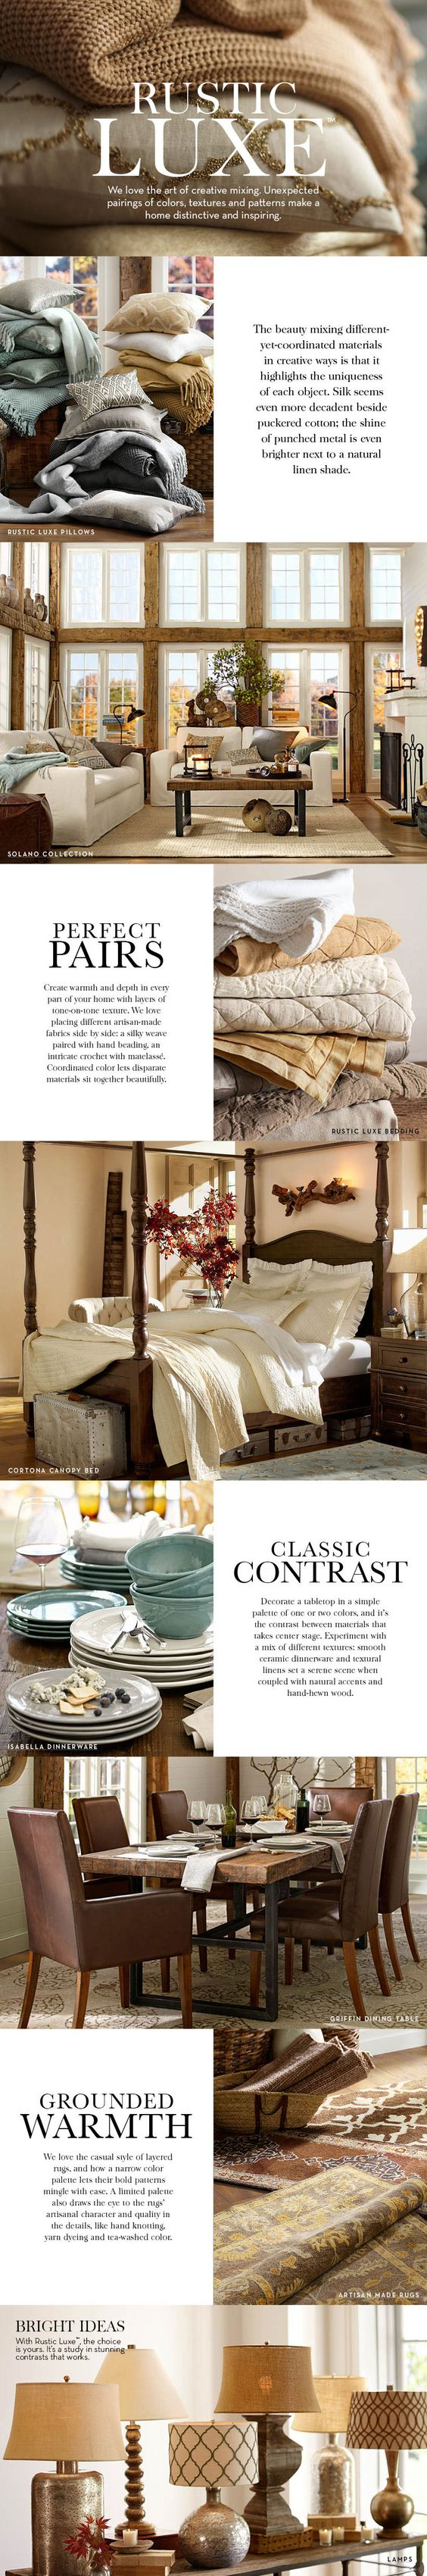 Rustic Luxe Rustic And Pottery Barn On Pinterest